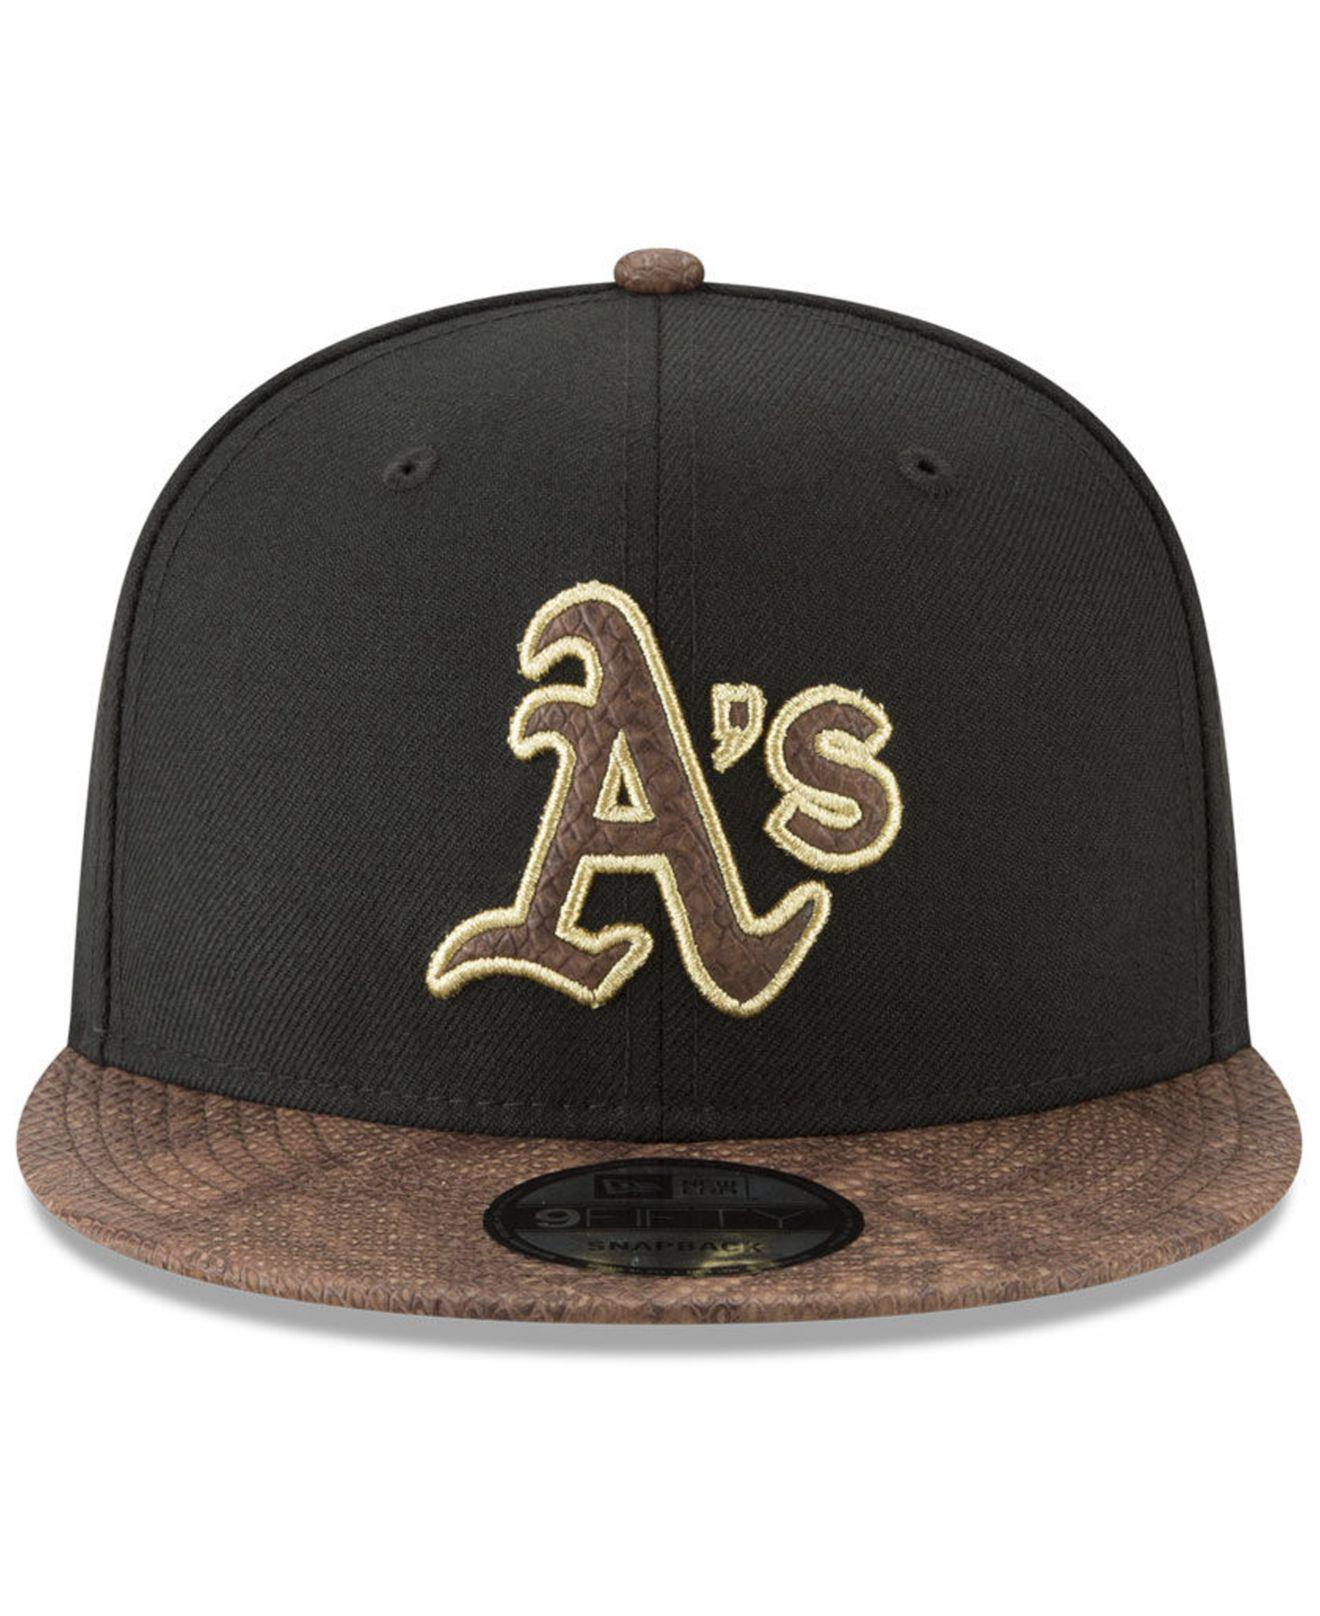 sale retailer b24d3 9a9f0 ... sweden lyst ktz oakland athletics gold snake 9fifty snapback cap in  black for men 0b290 69286